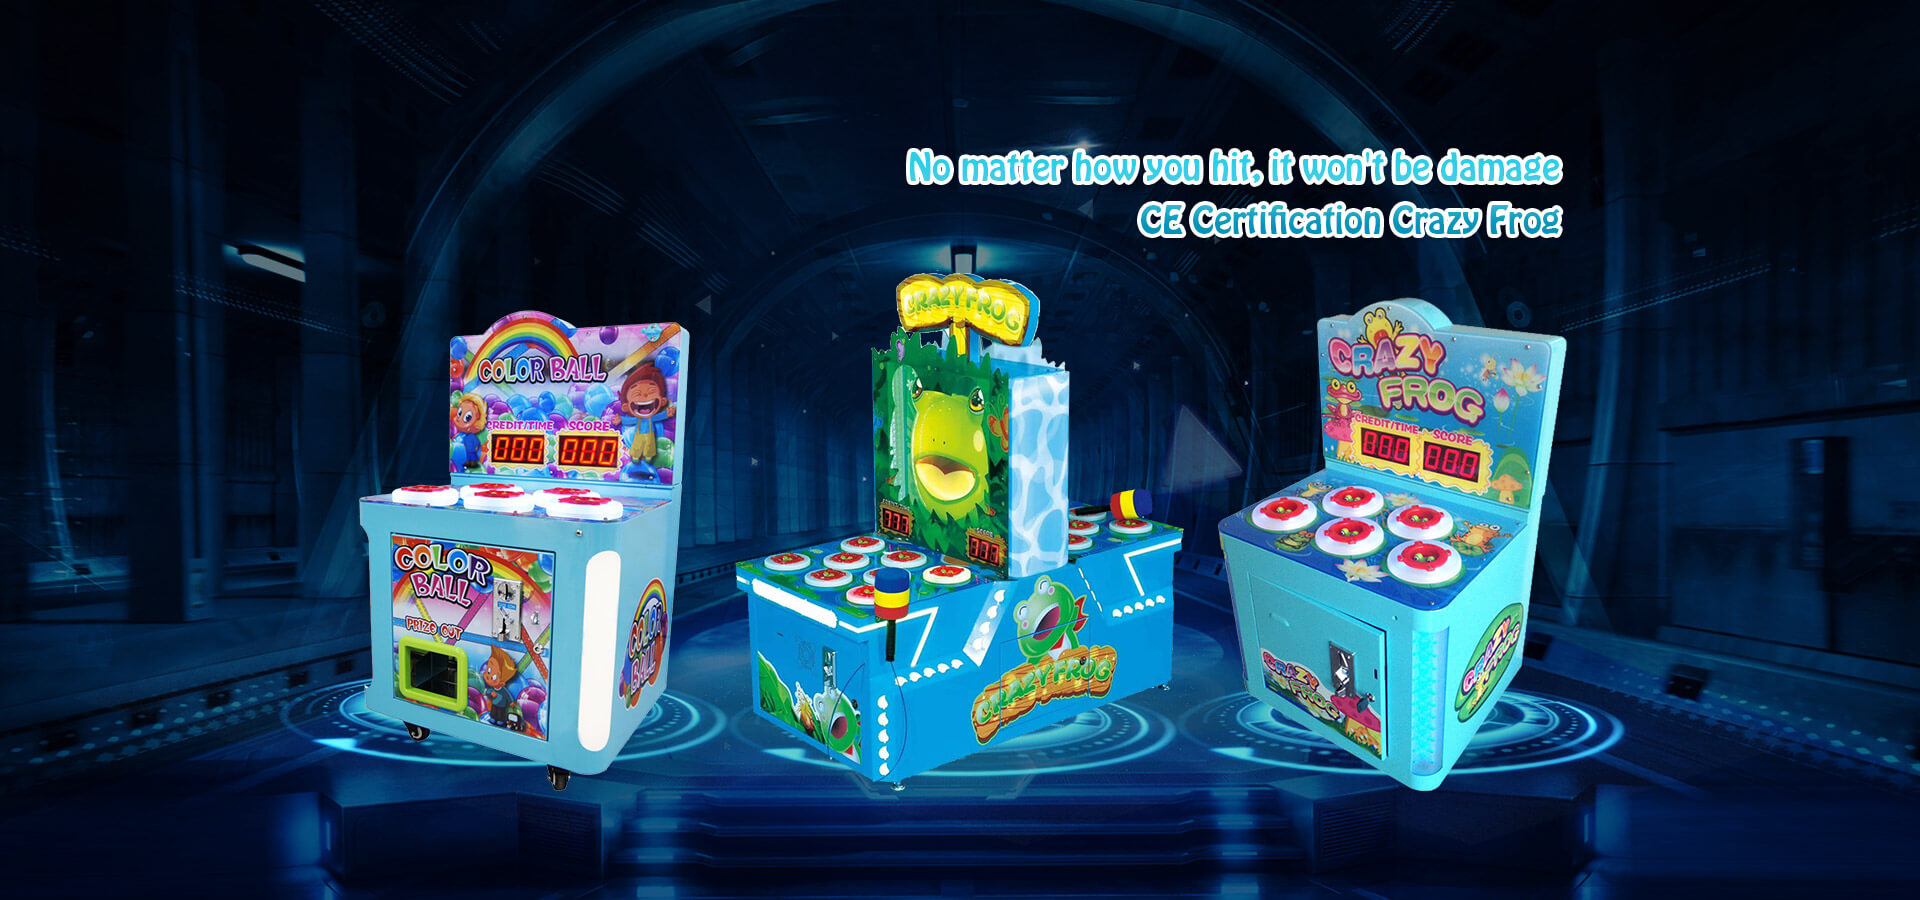 hit crazy frog hammer game machine